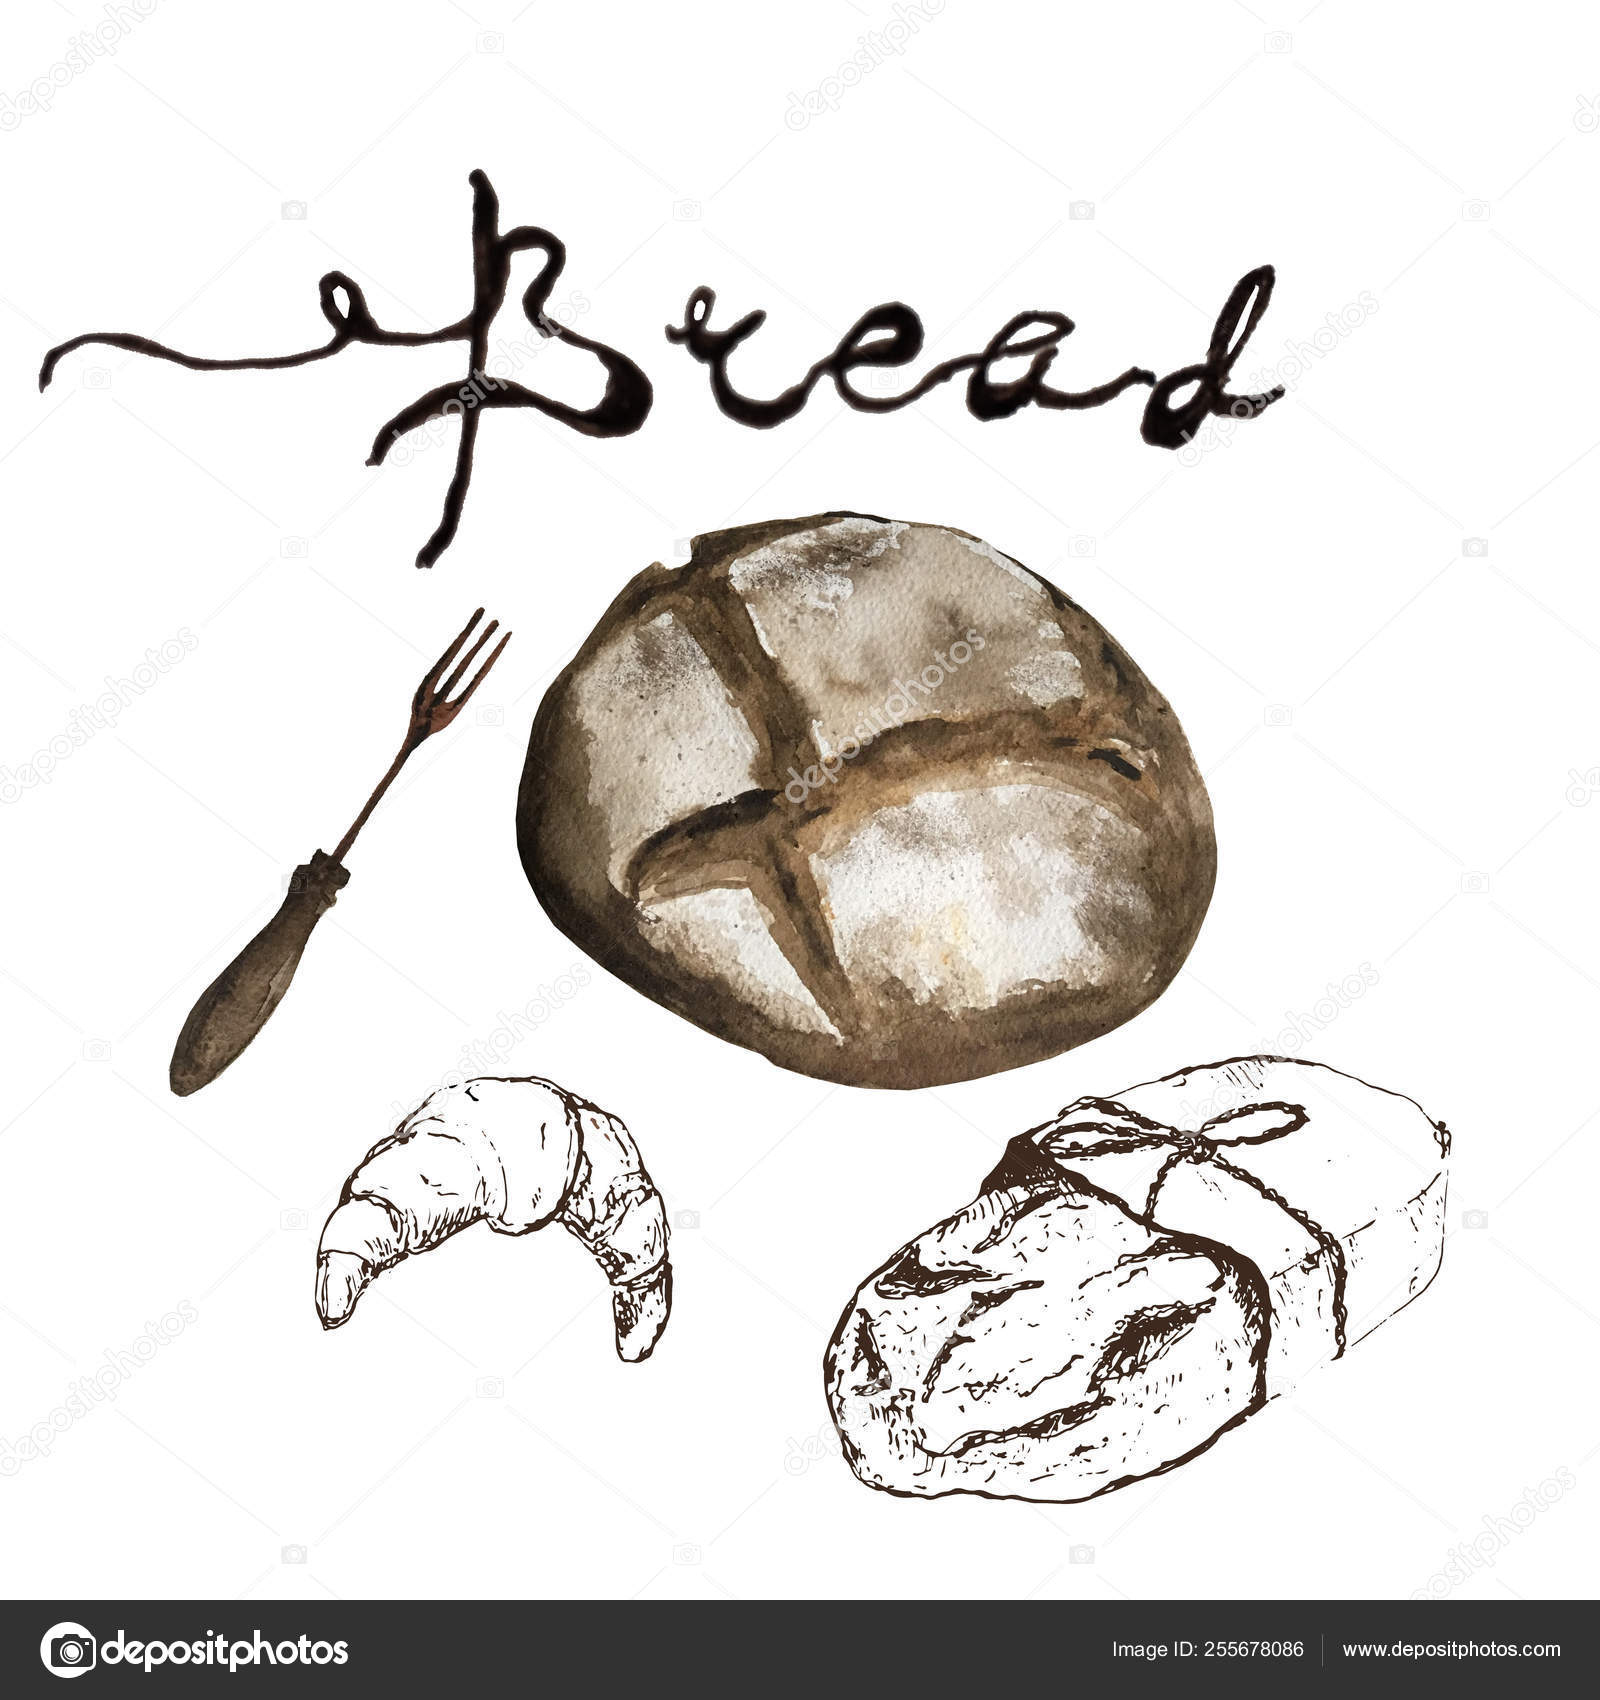 Bread Bakery Product Watercolor And Pen Sketch Drawing With Lettering Fresh Loaf Of Bread Baguette Croissant And Sweet Bun Pretzel Natural Organic Bread Bakery Shop Design Stock Photo C Bychovsky Gmail Com 255678086